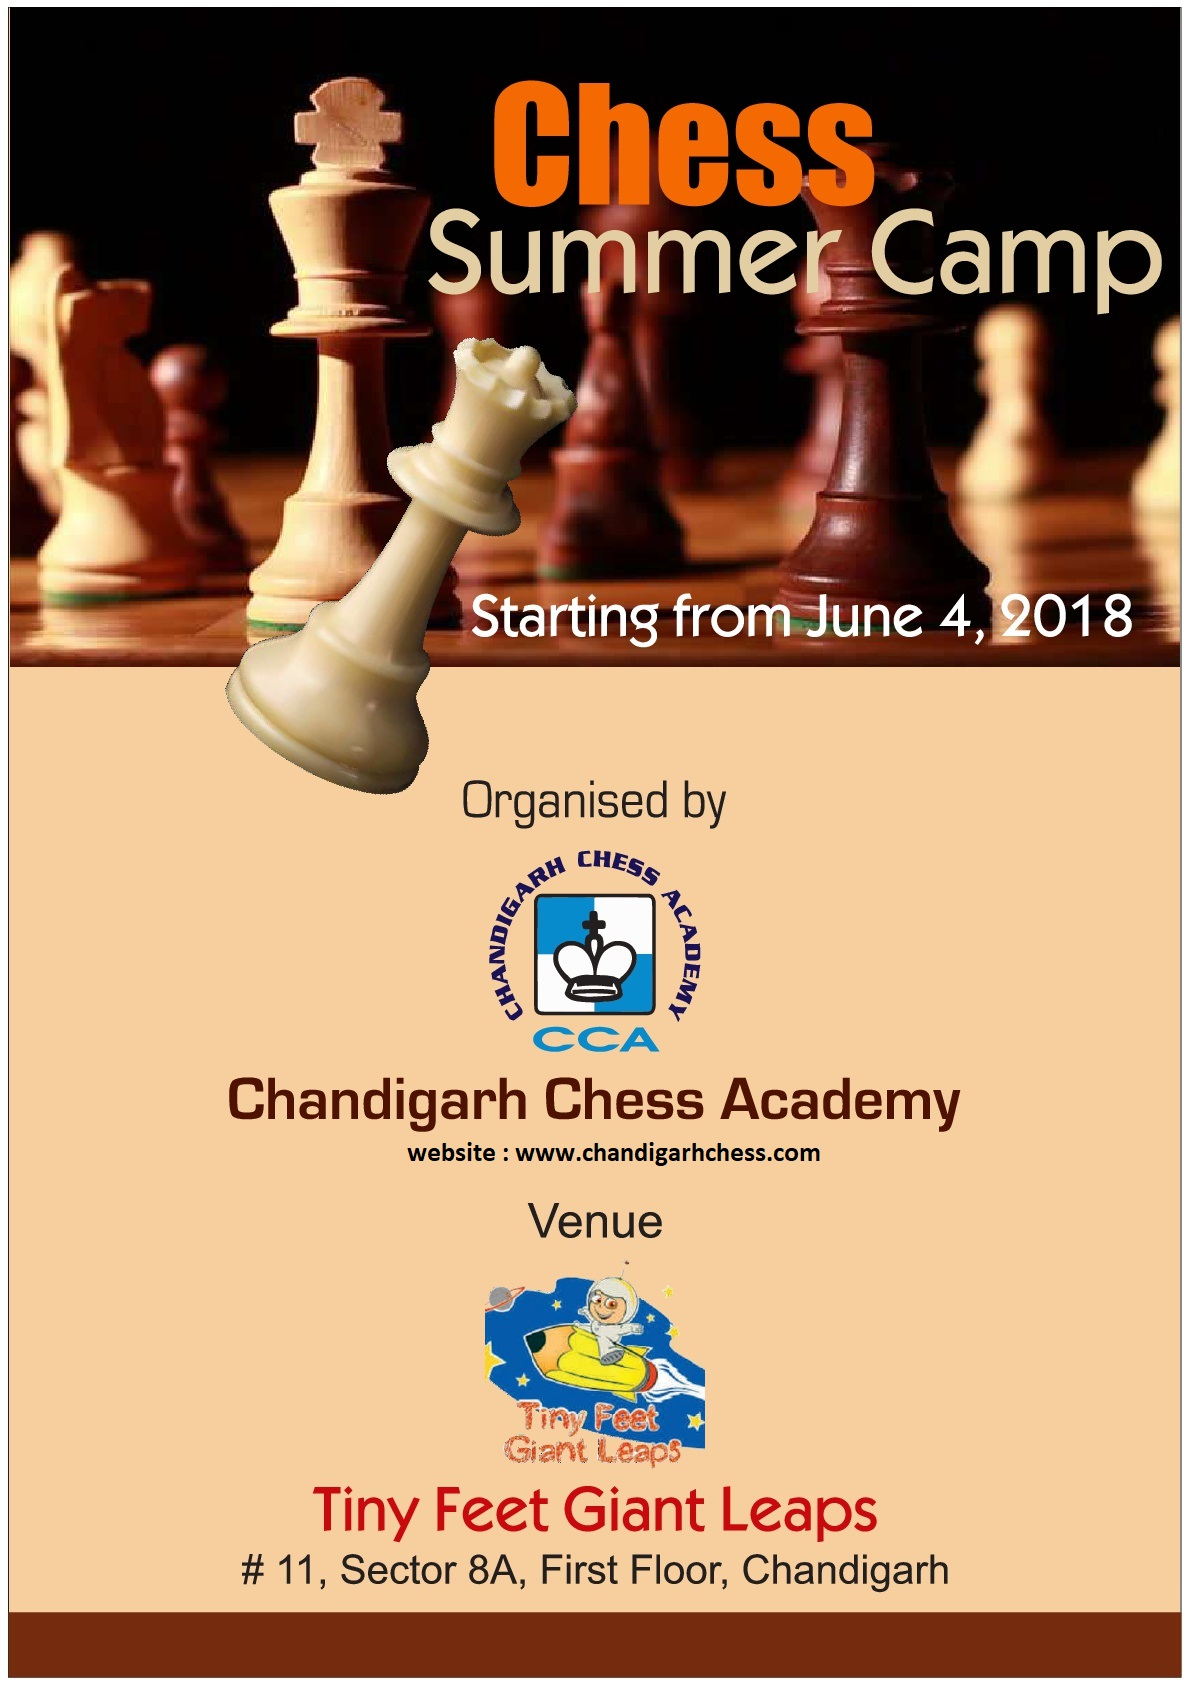 chess-summer-camp-2018-001